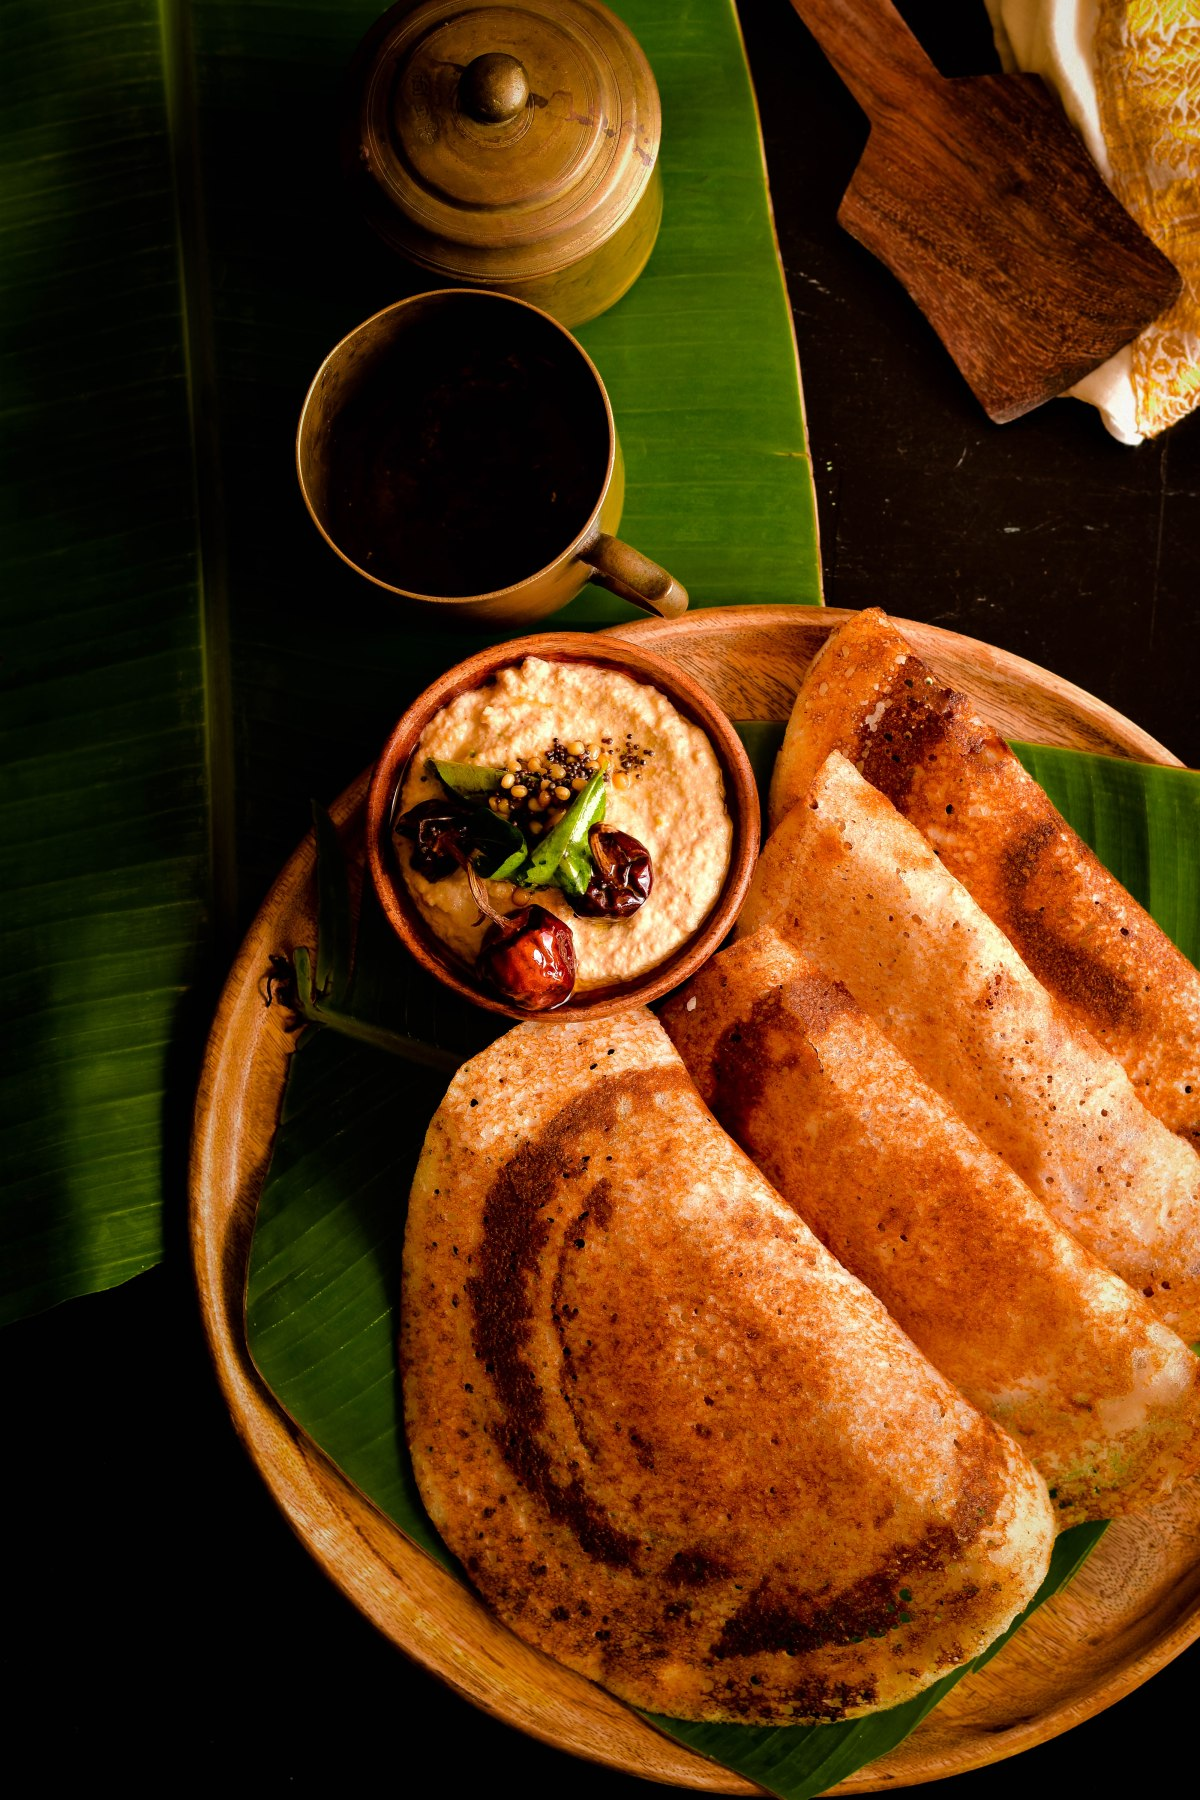 Dosa – Crisp rice batter crepes